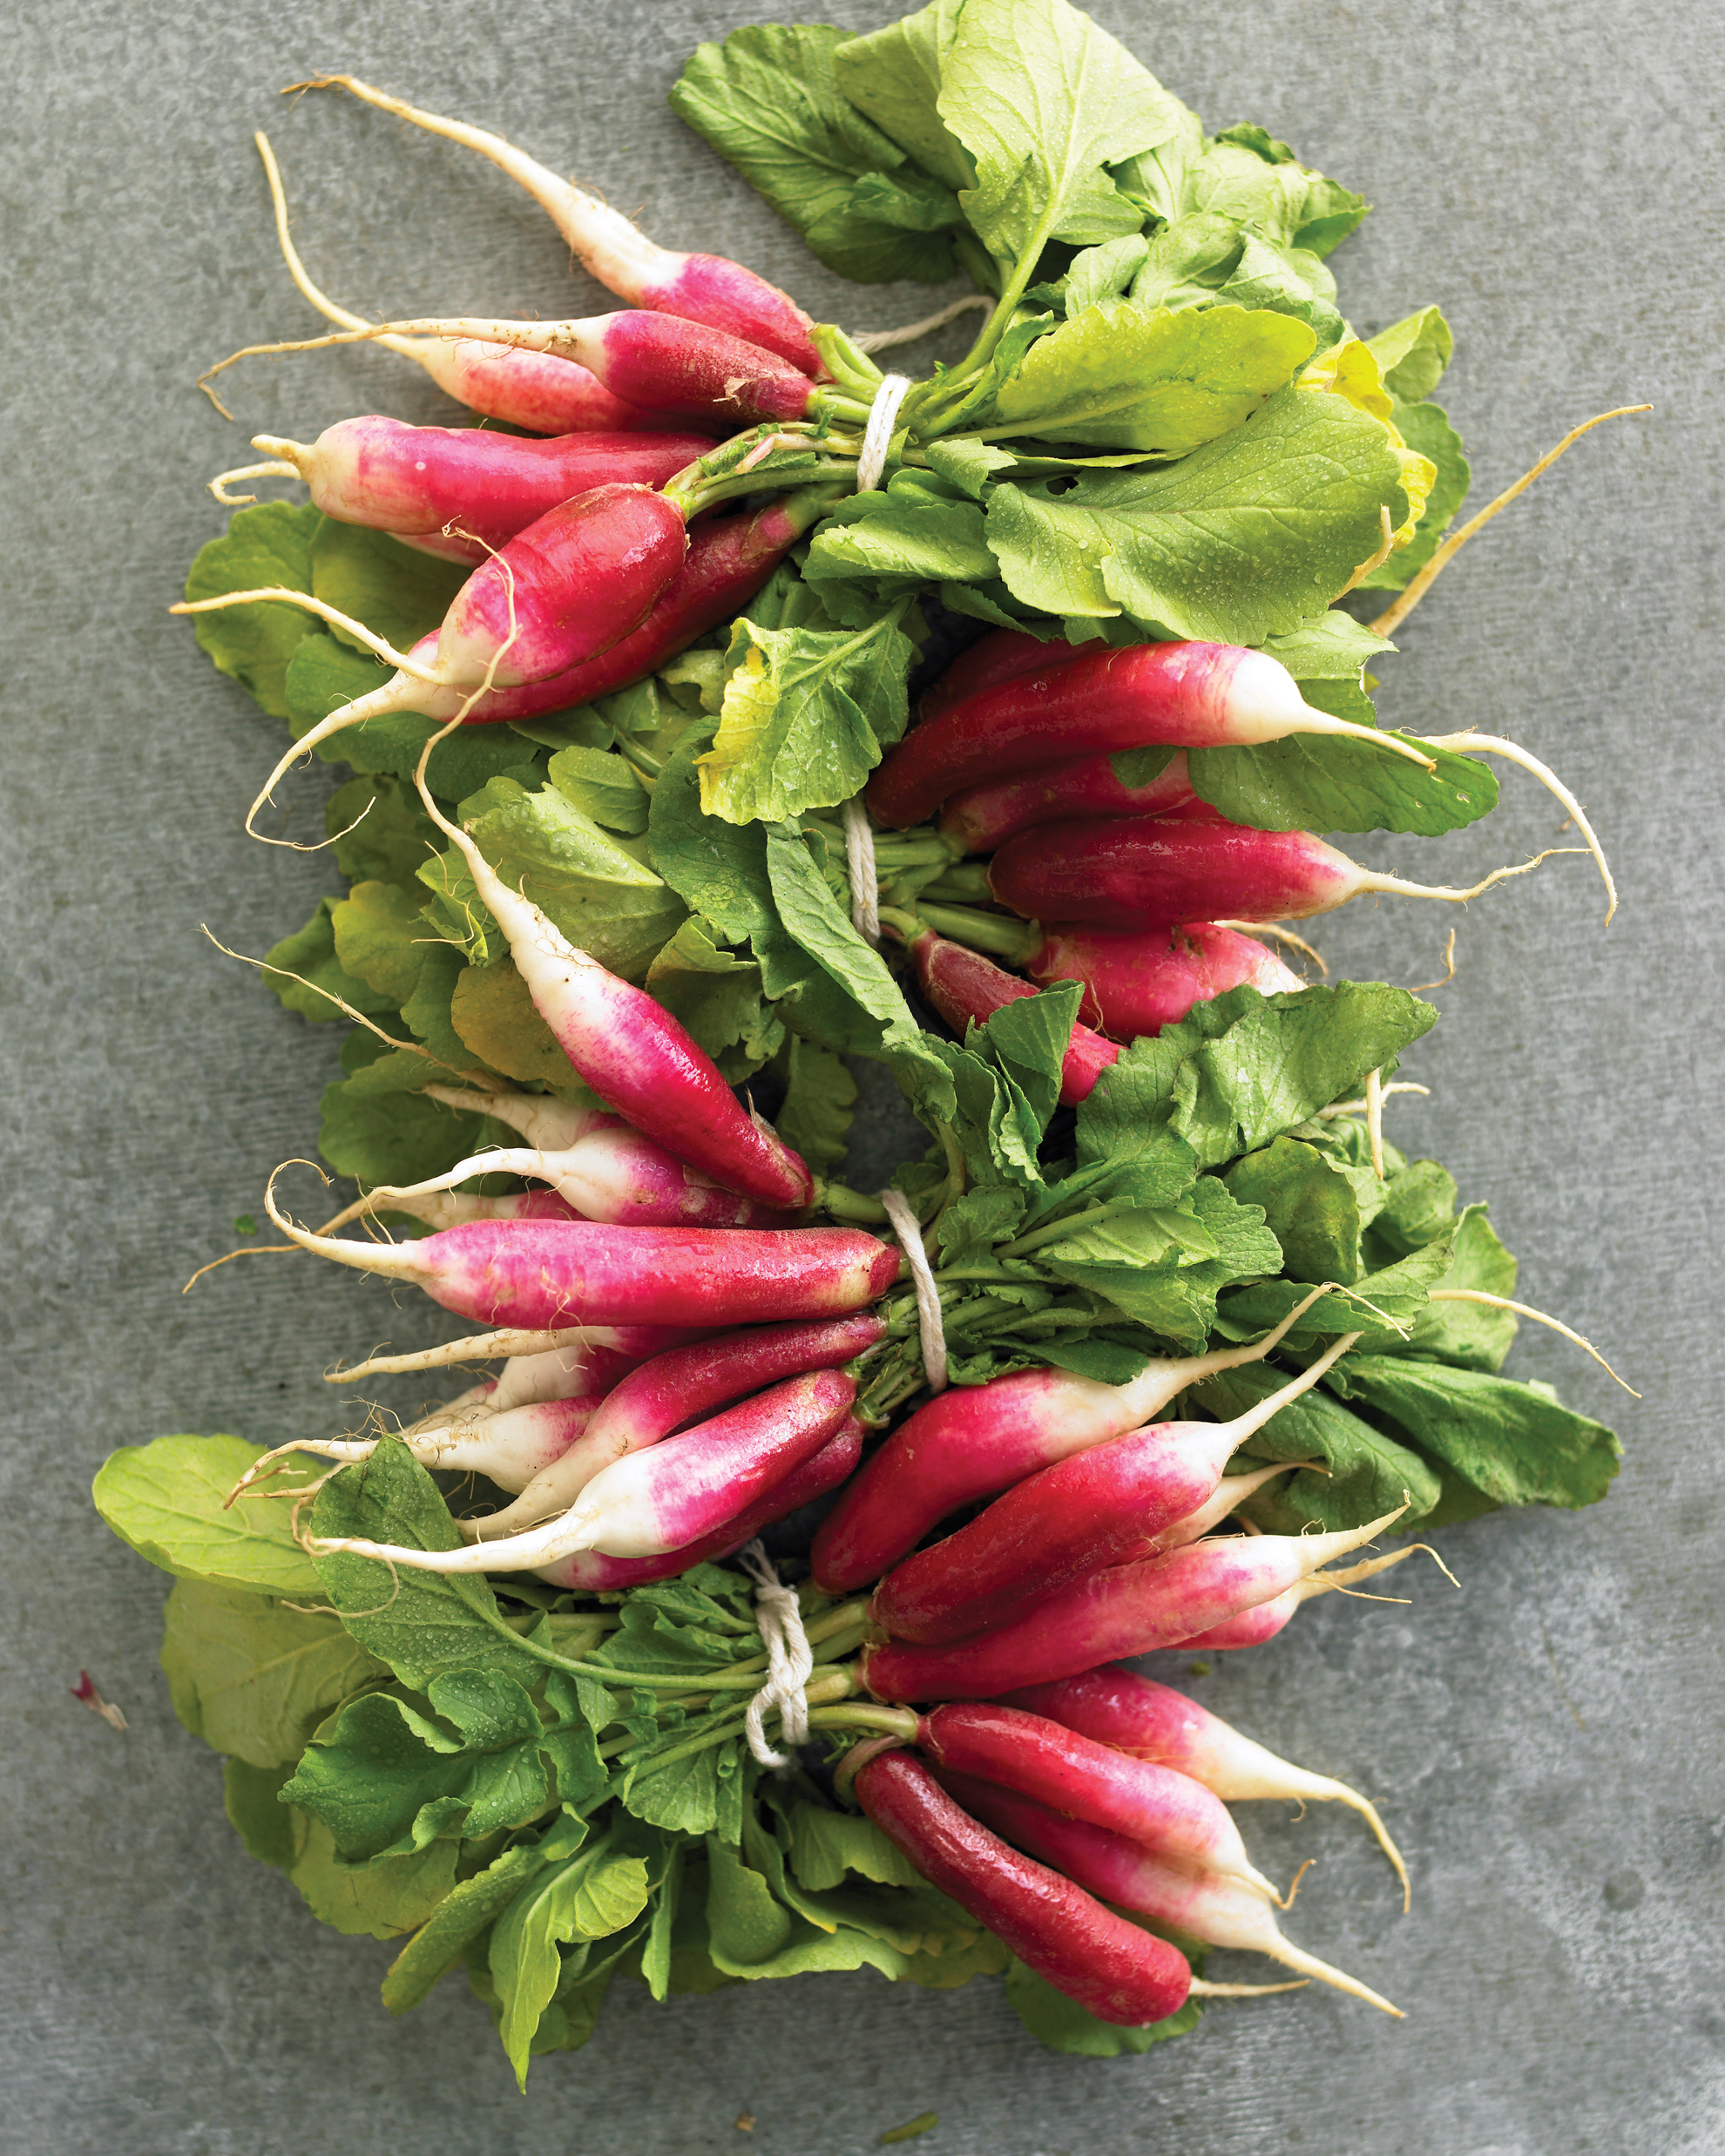 radishes-great-finds-msl0513-mld106124.jpg